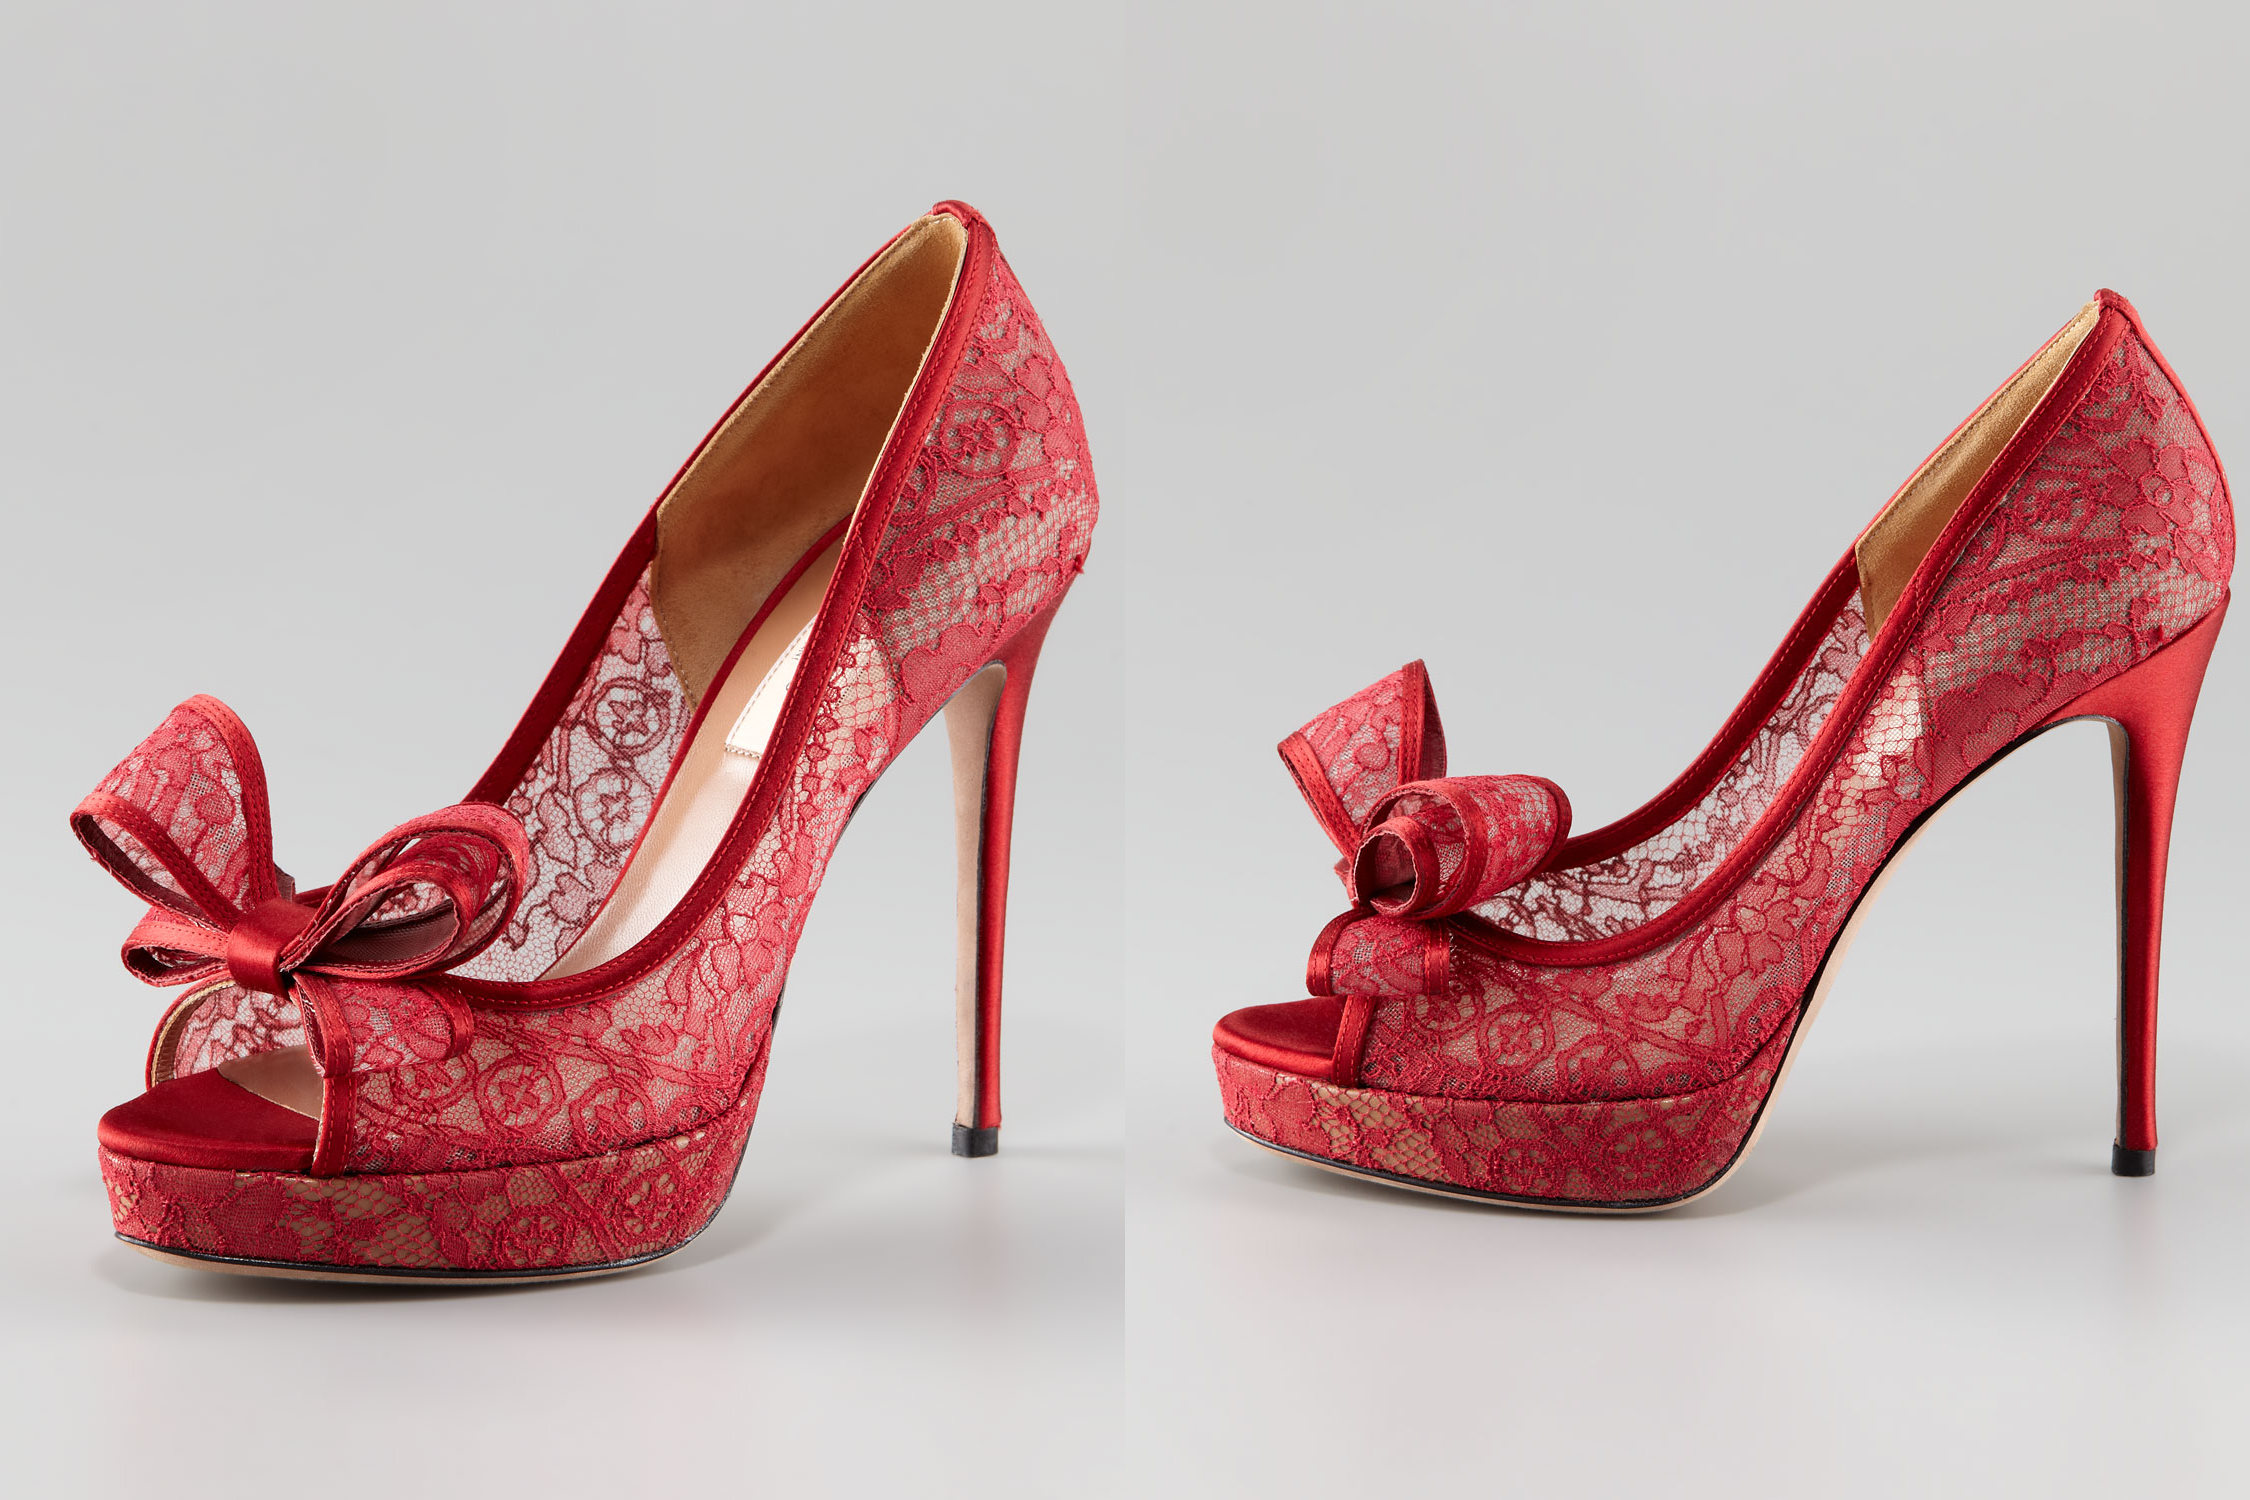 Illusion Wedding Shoes For